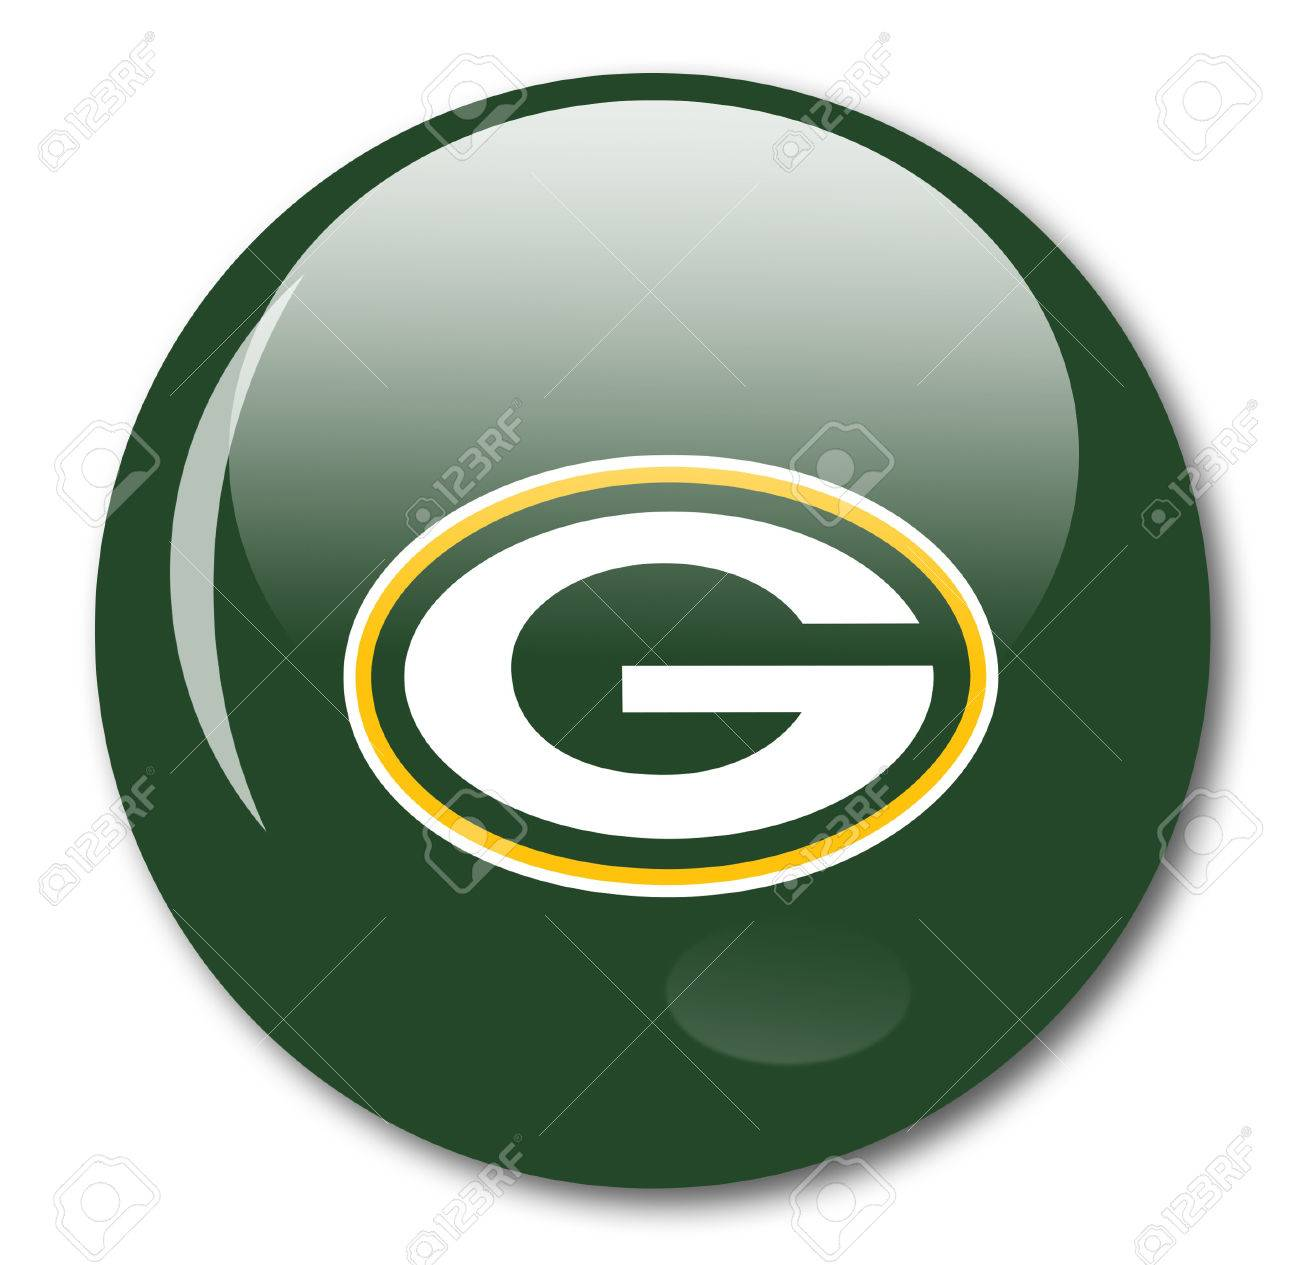 Frame For Green Bay Packers Stock Certificate - Green bay packers icon stock photo 38298228